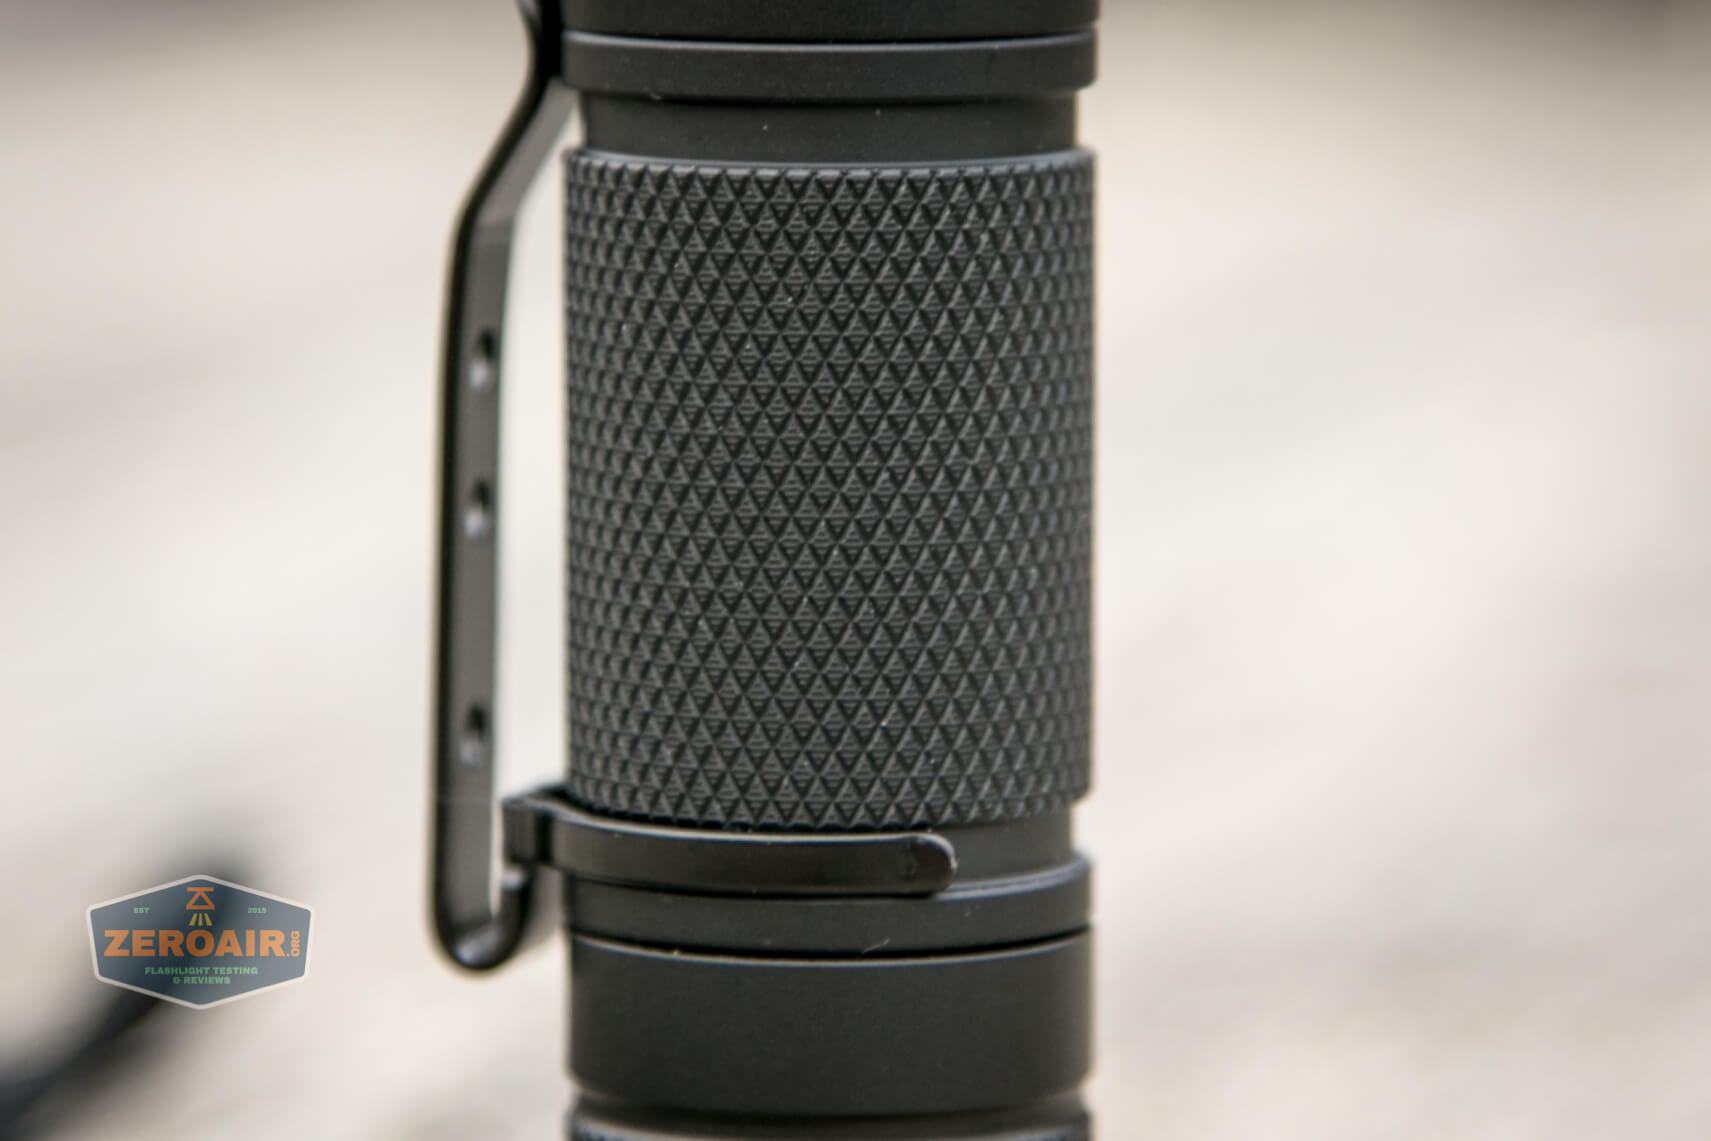 convoy t2 updated 14500/AA flashlight knurling